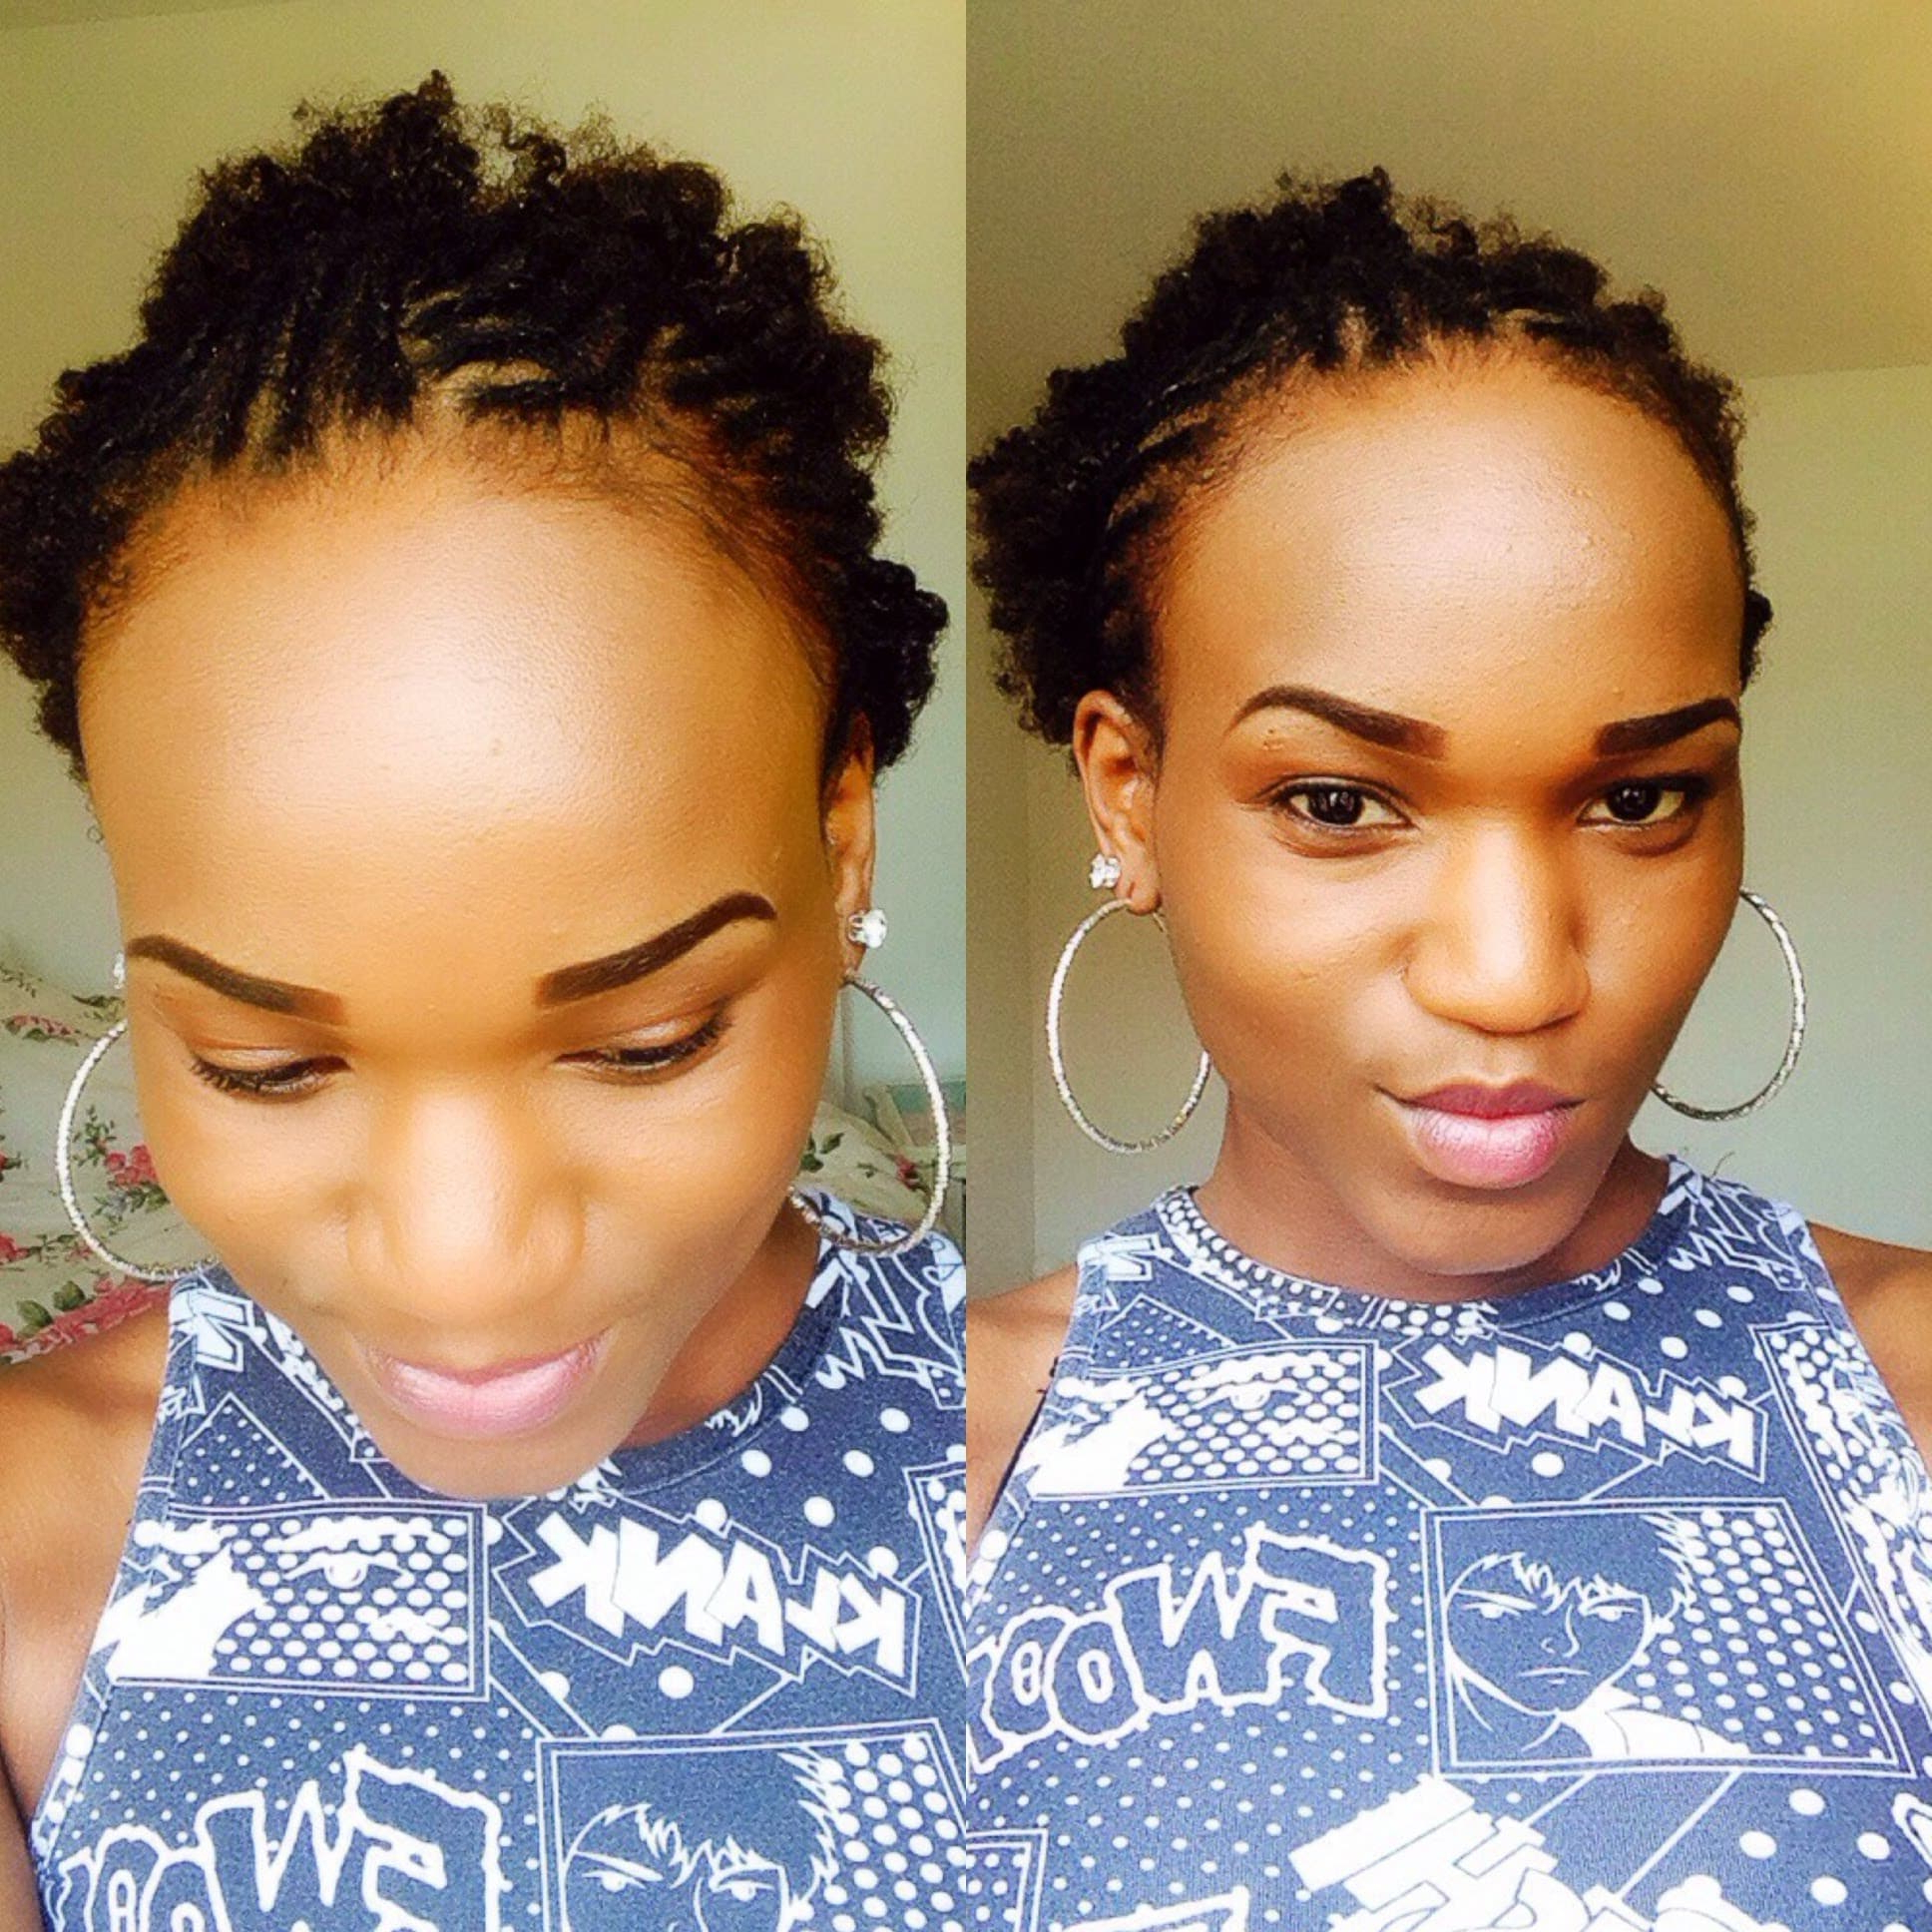 Hairstyles For Women With Big Foreheads | Womens Hairstyles In Short Hairstyles For Women With Big Foreheads (View 6 of 25)